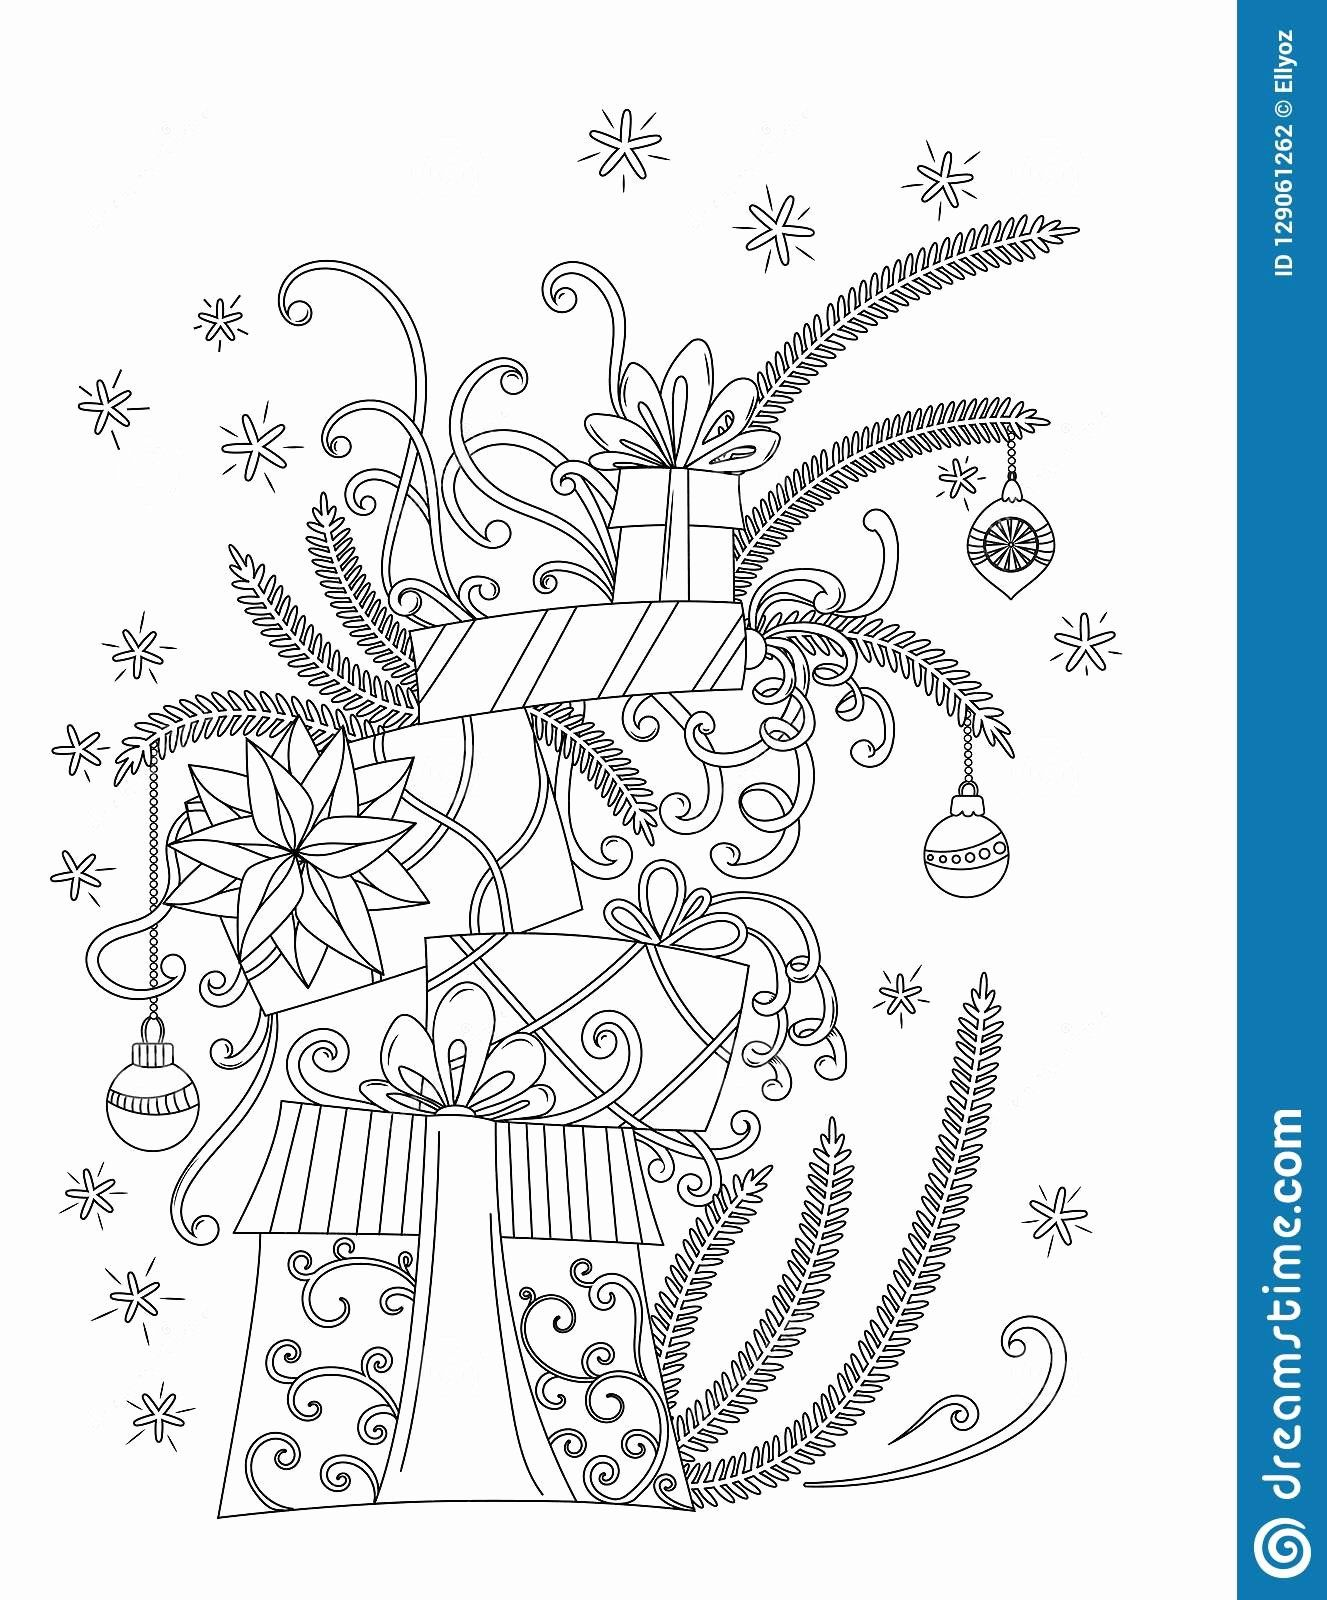 Birthday Present Coloring Page New Merry Christmas Coloring Page Set Of Elements New Ye Holiday Coloring Book Christmas Coloring Pages Christmas Coloring Books